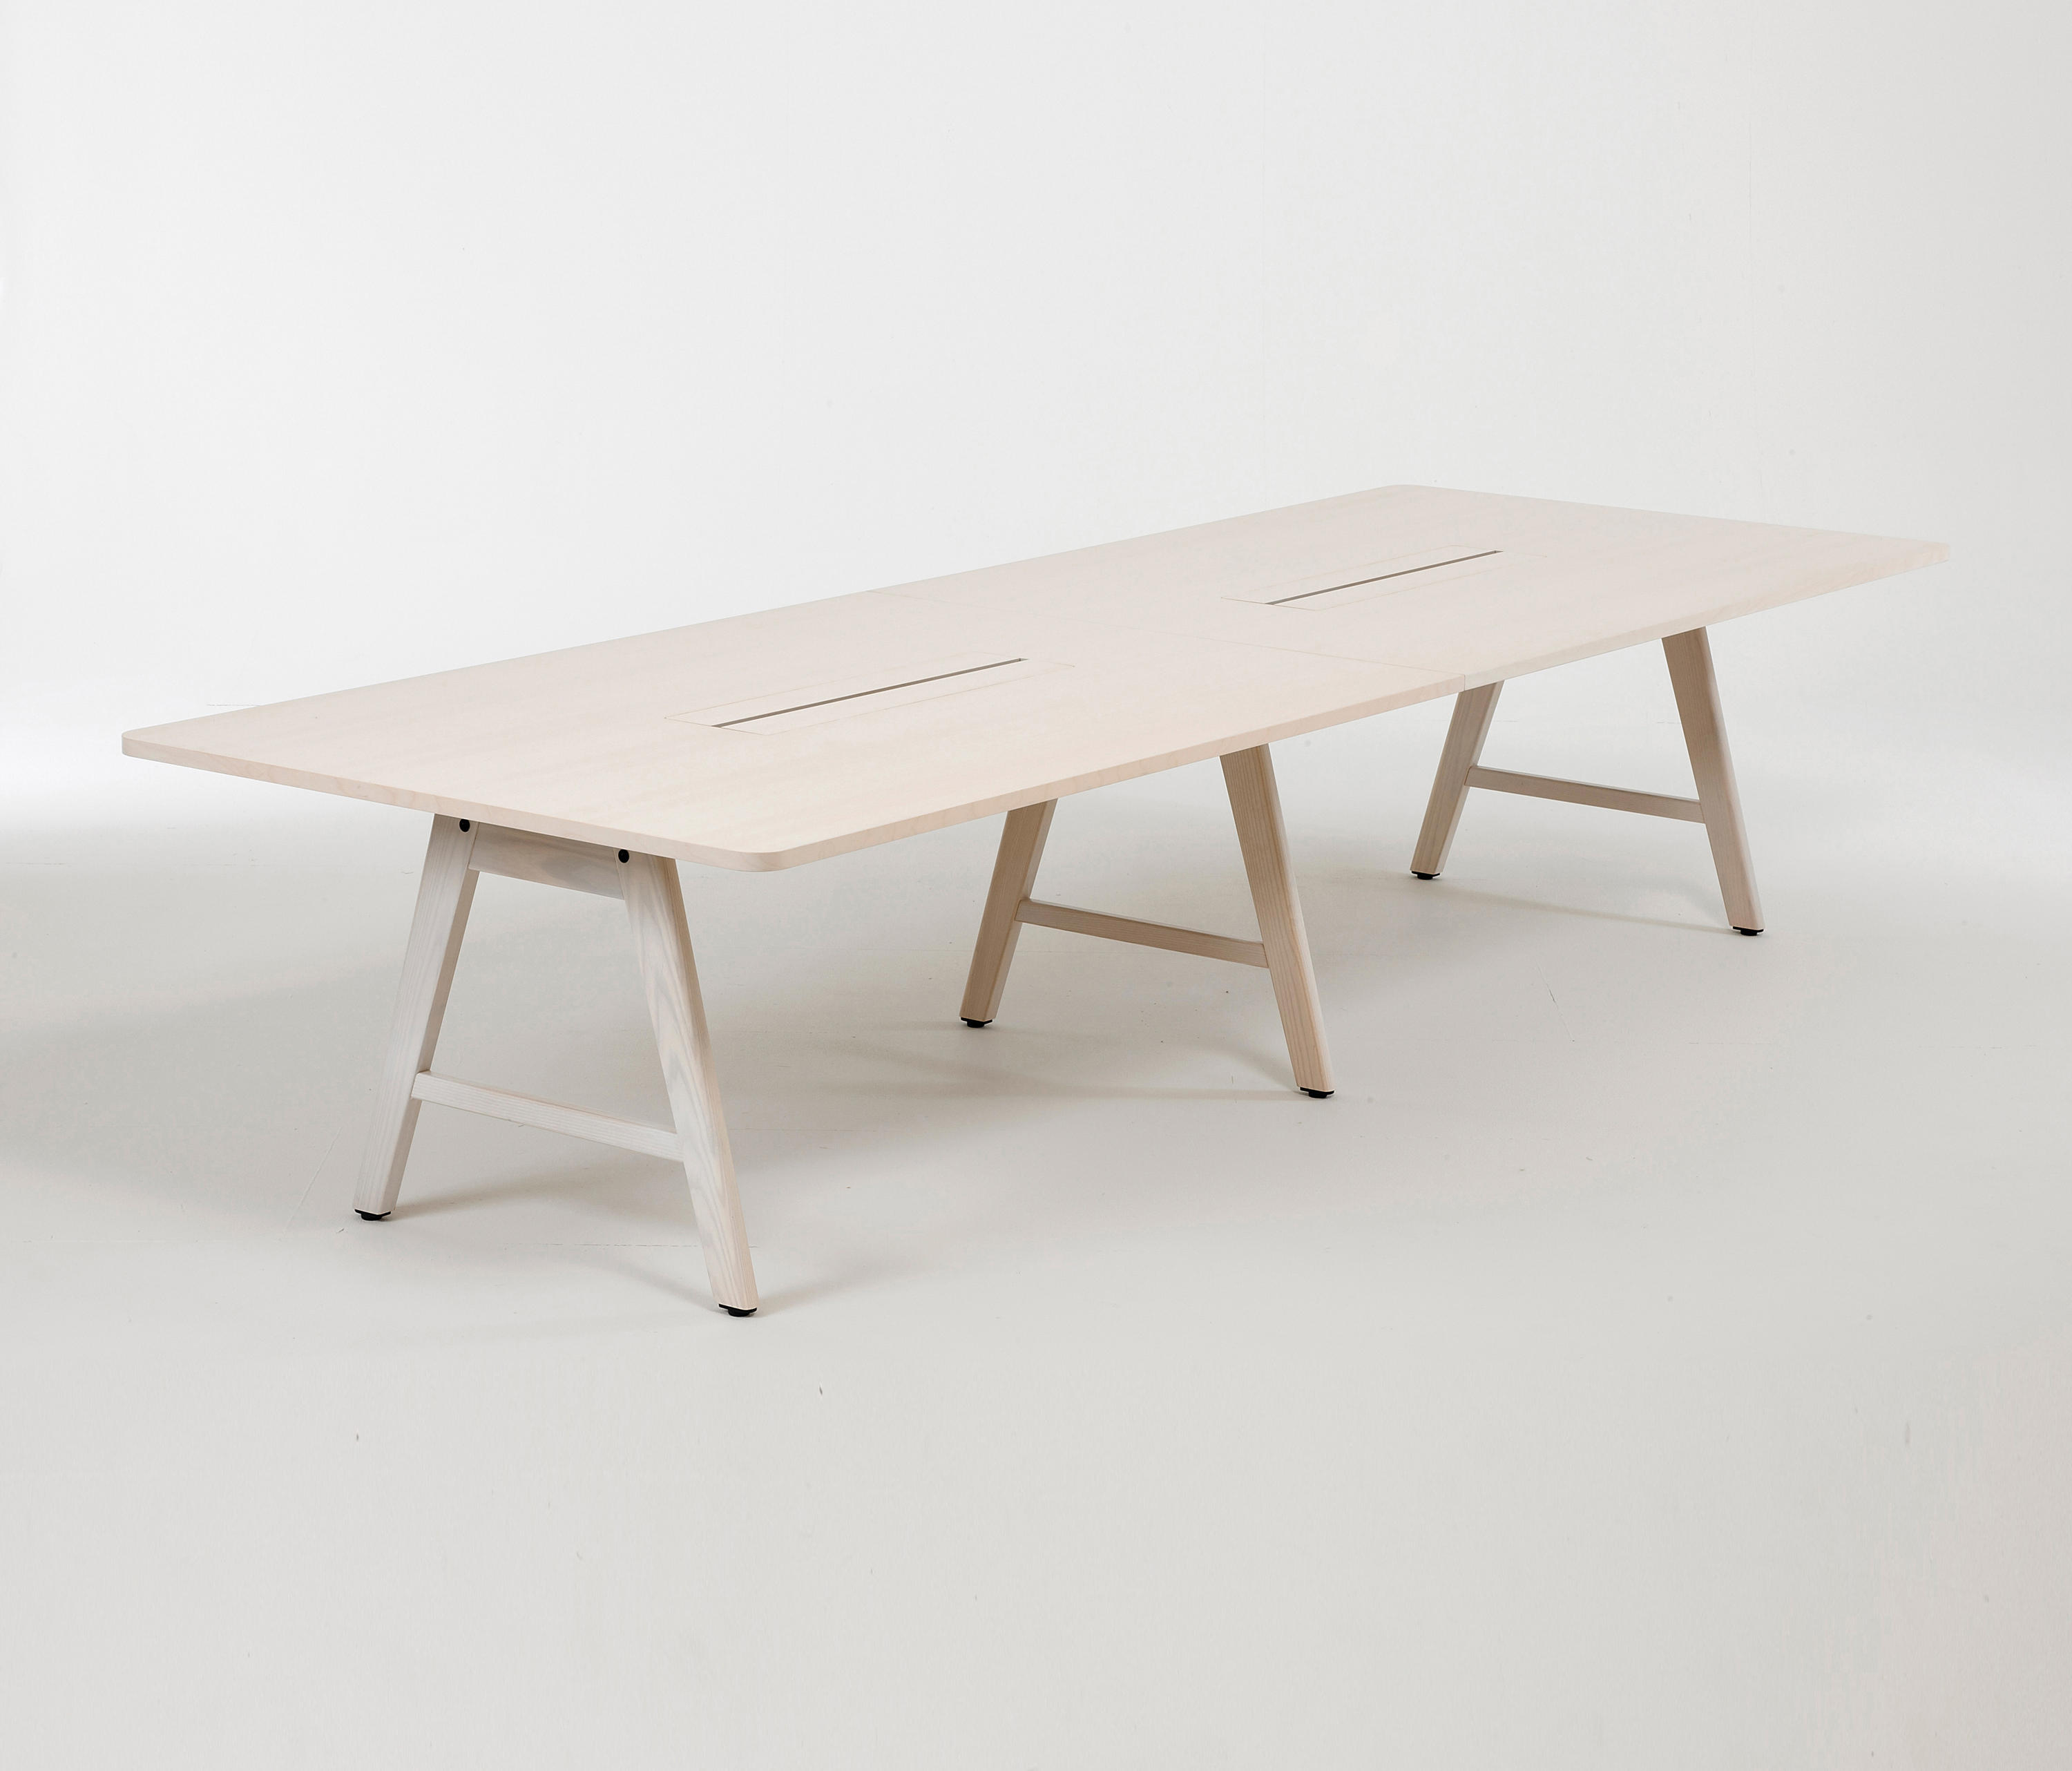 ASERIES CONFERENCE TABLE Contract Tables From SA Möbler Architonic - Series a conference table